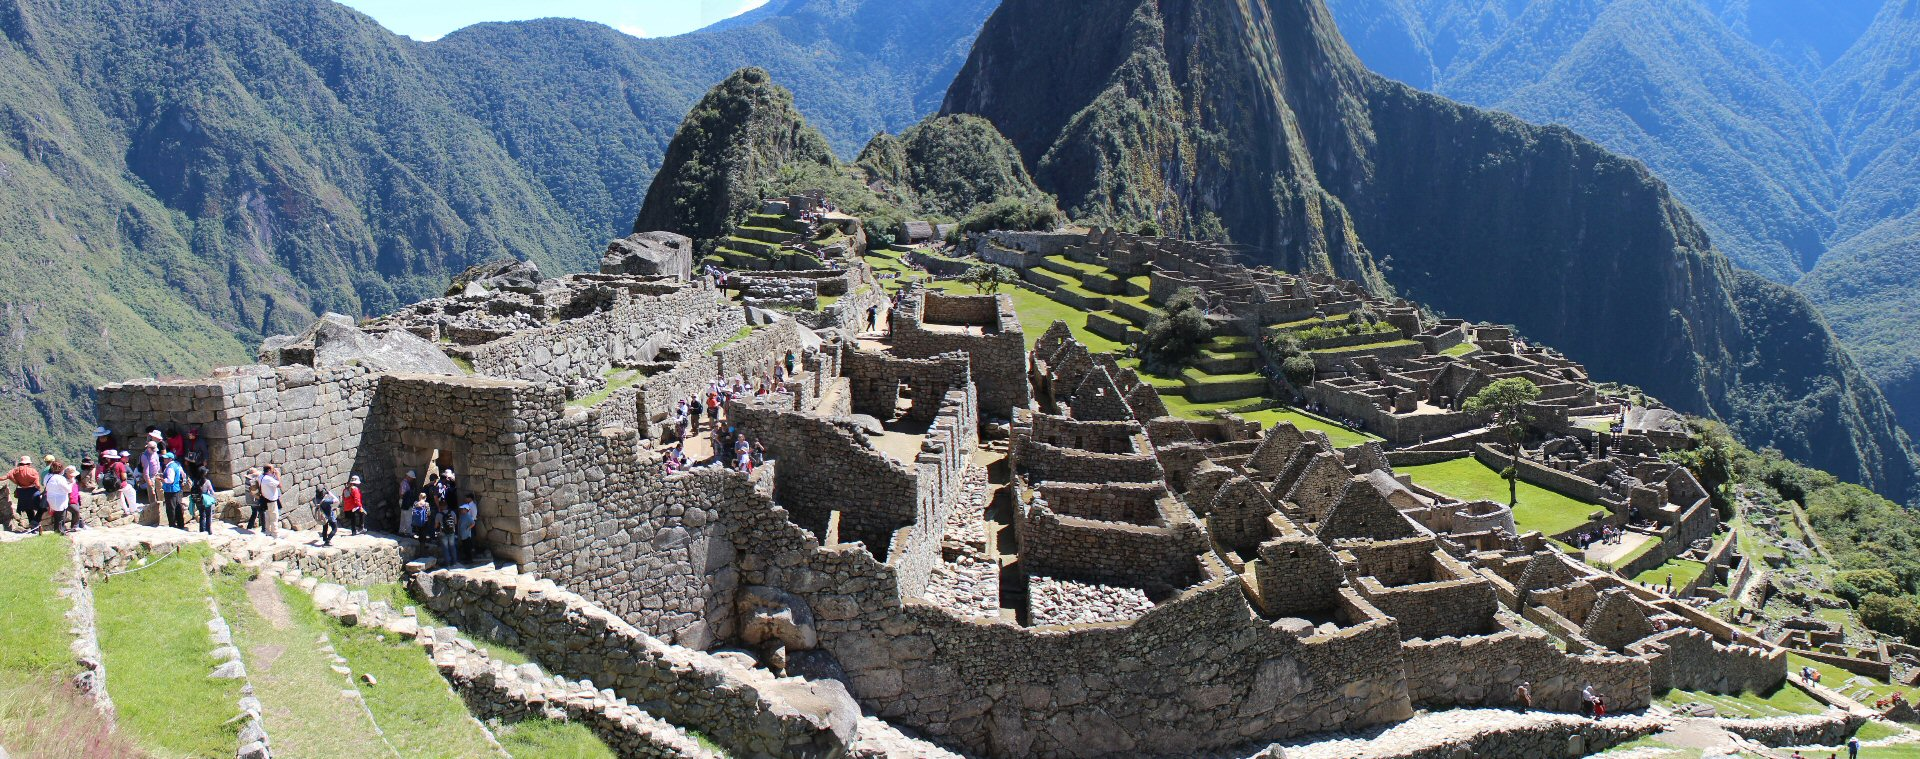 27-civilta_inca_slid2